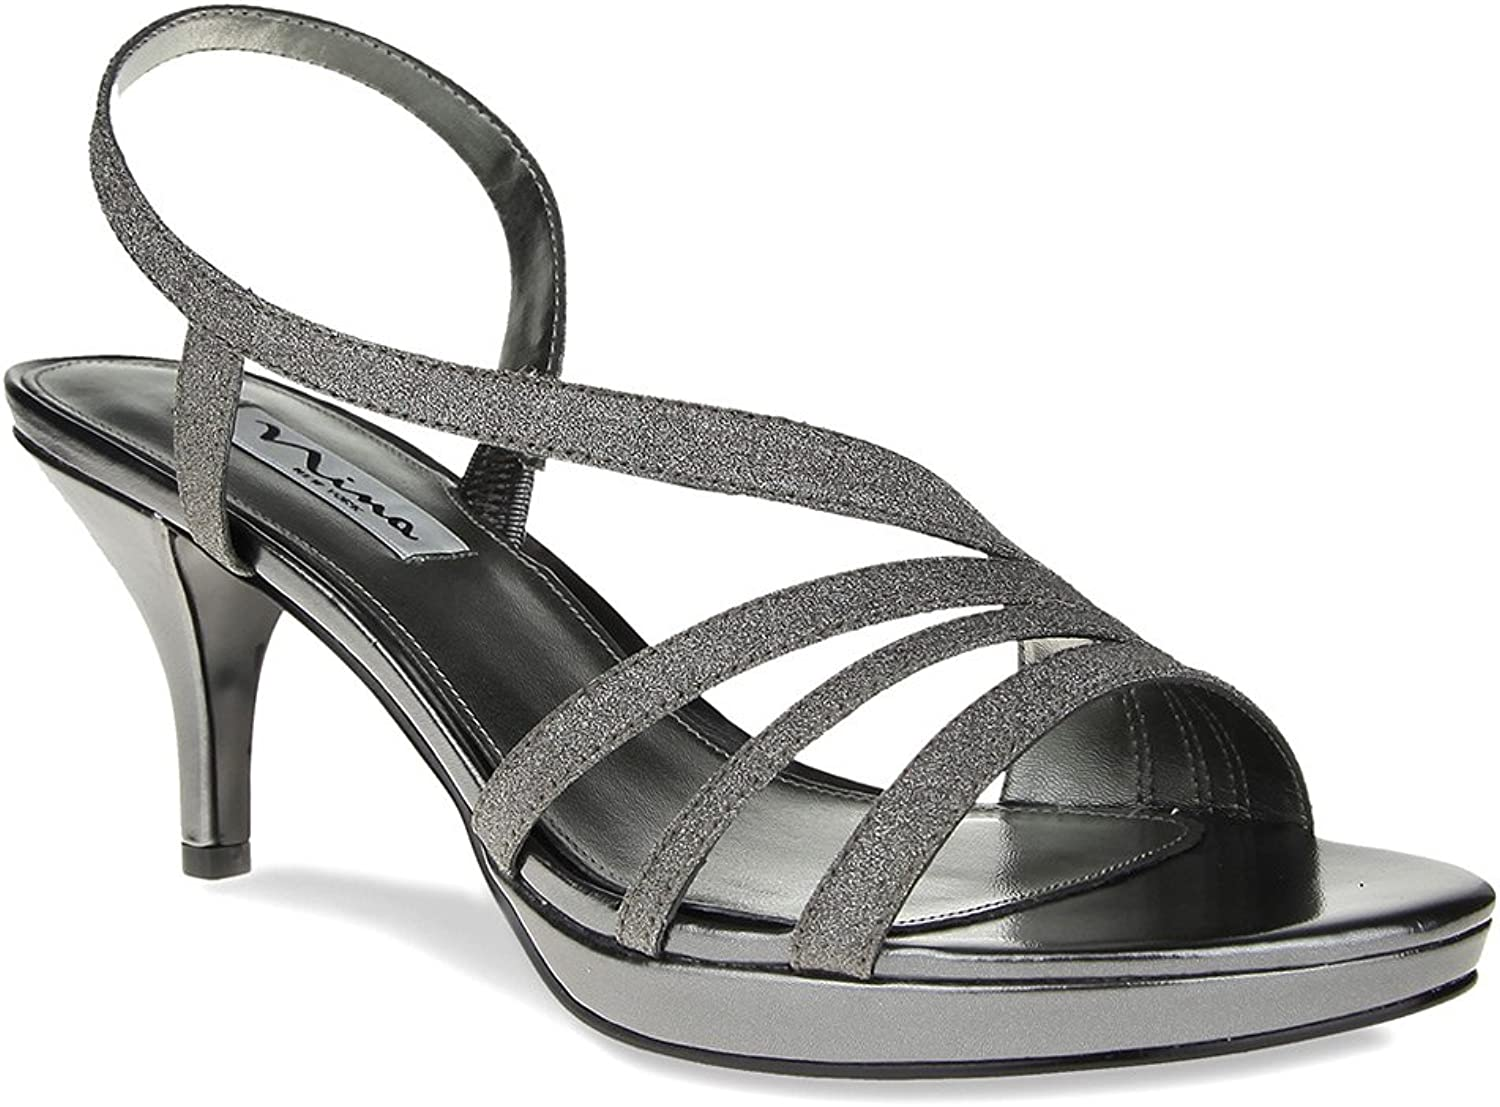 Nina Women's Neely YY Dress Sandal